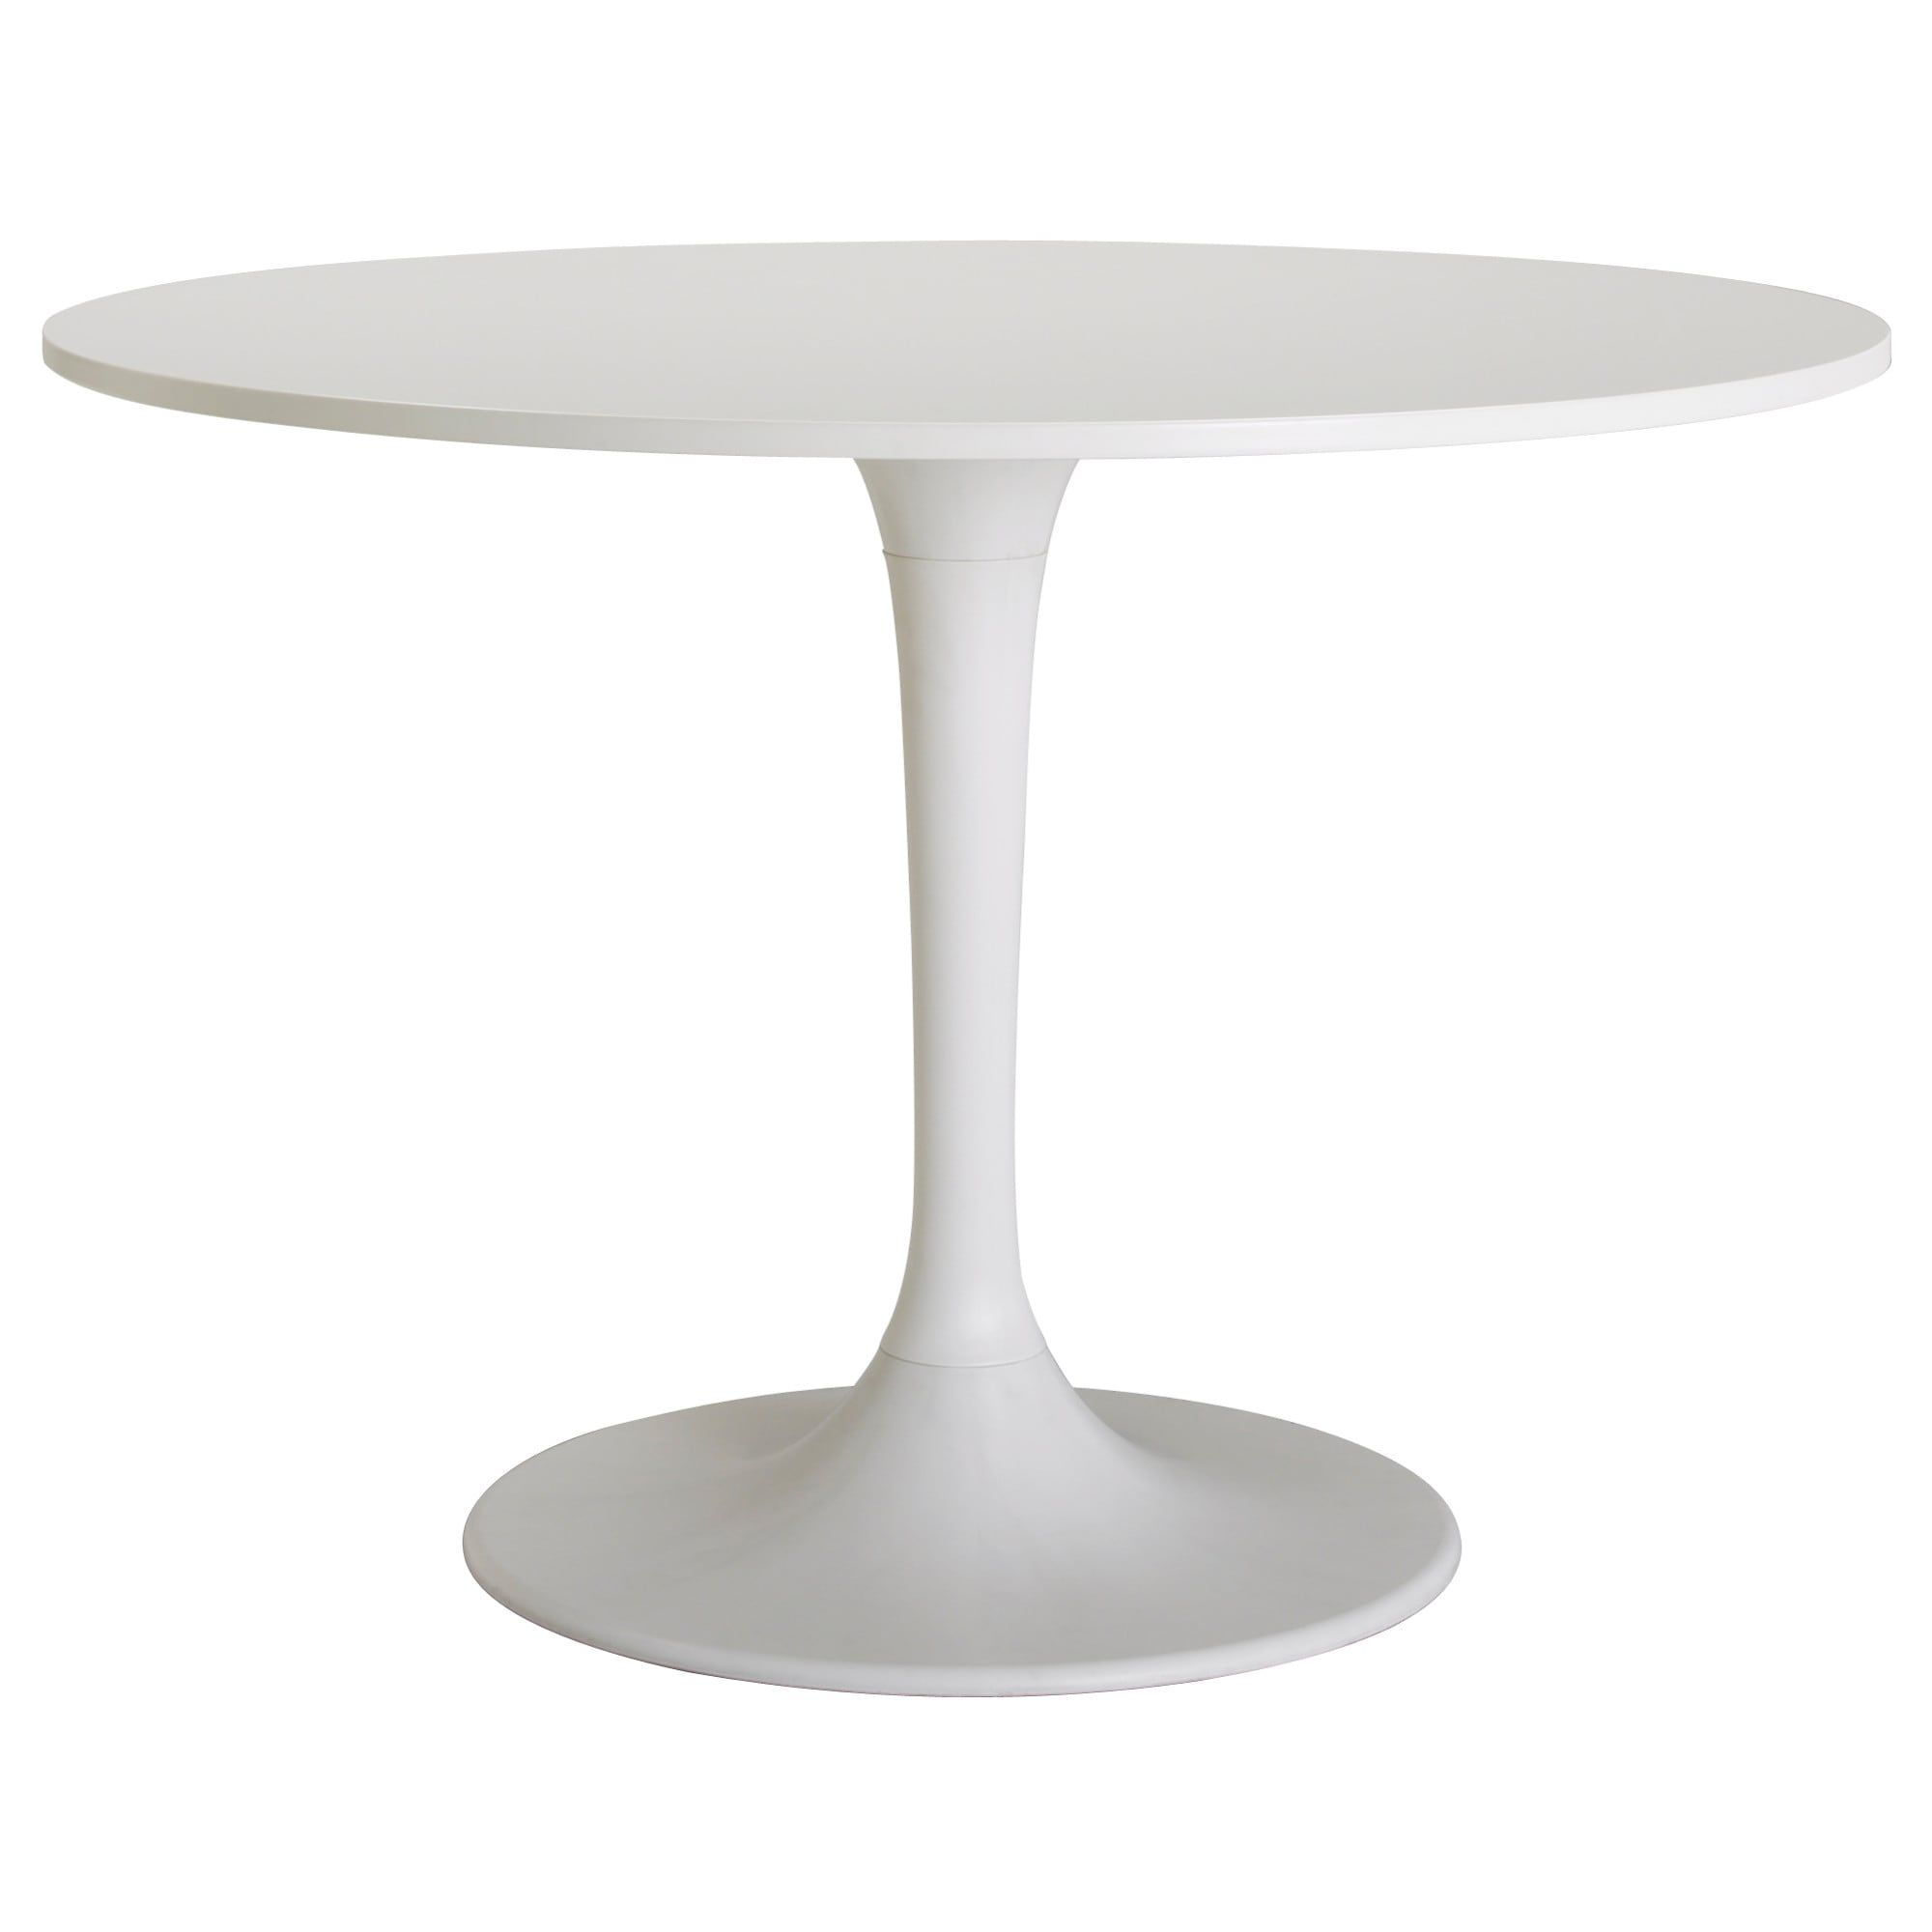 Docksta Table White 41 Dining Table Ikea White Table